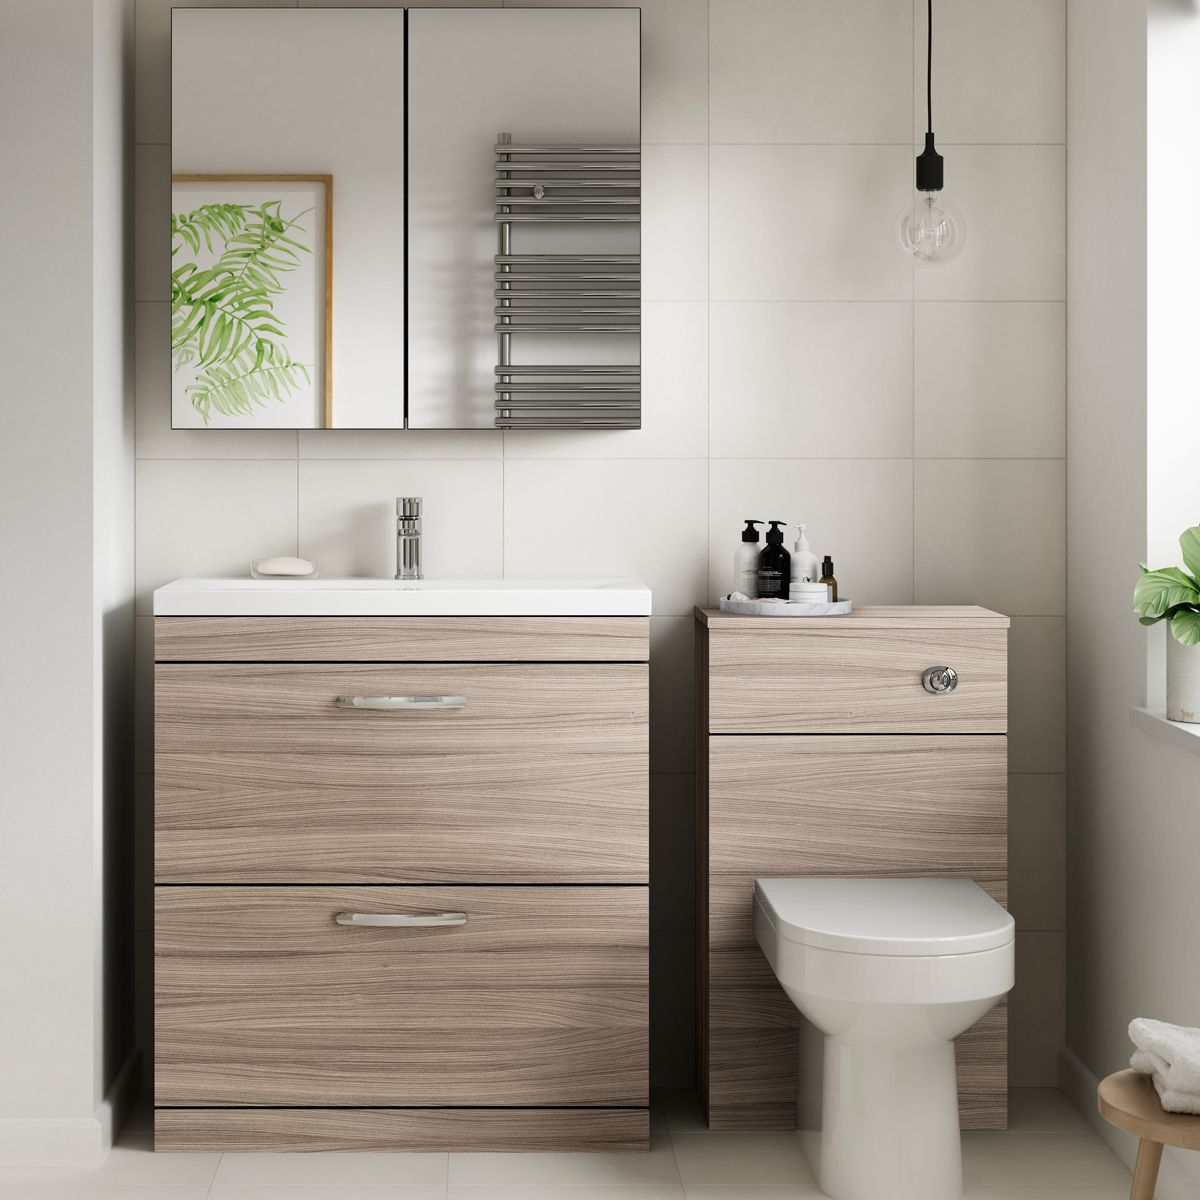 Premier Athena Driftwood Cloakroom Furniture Pack